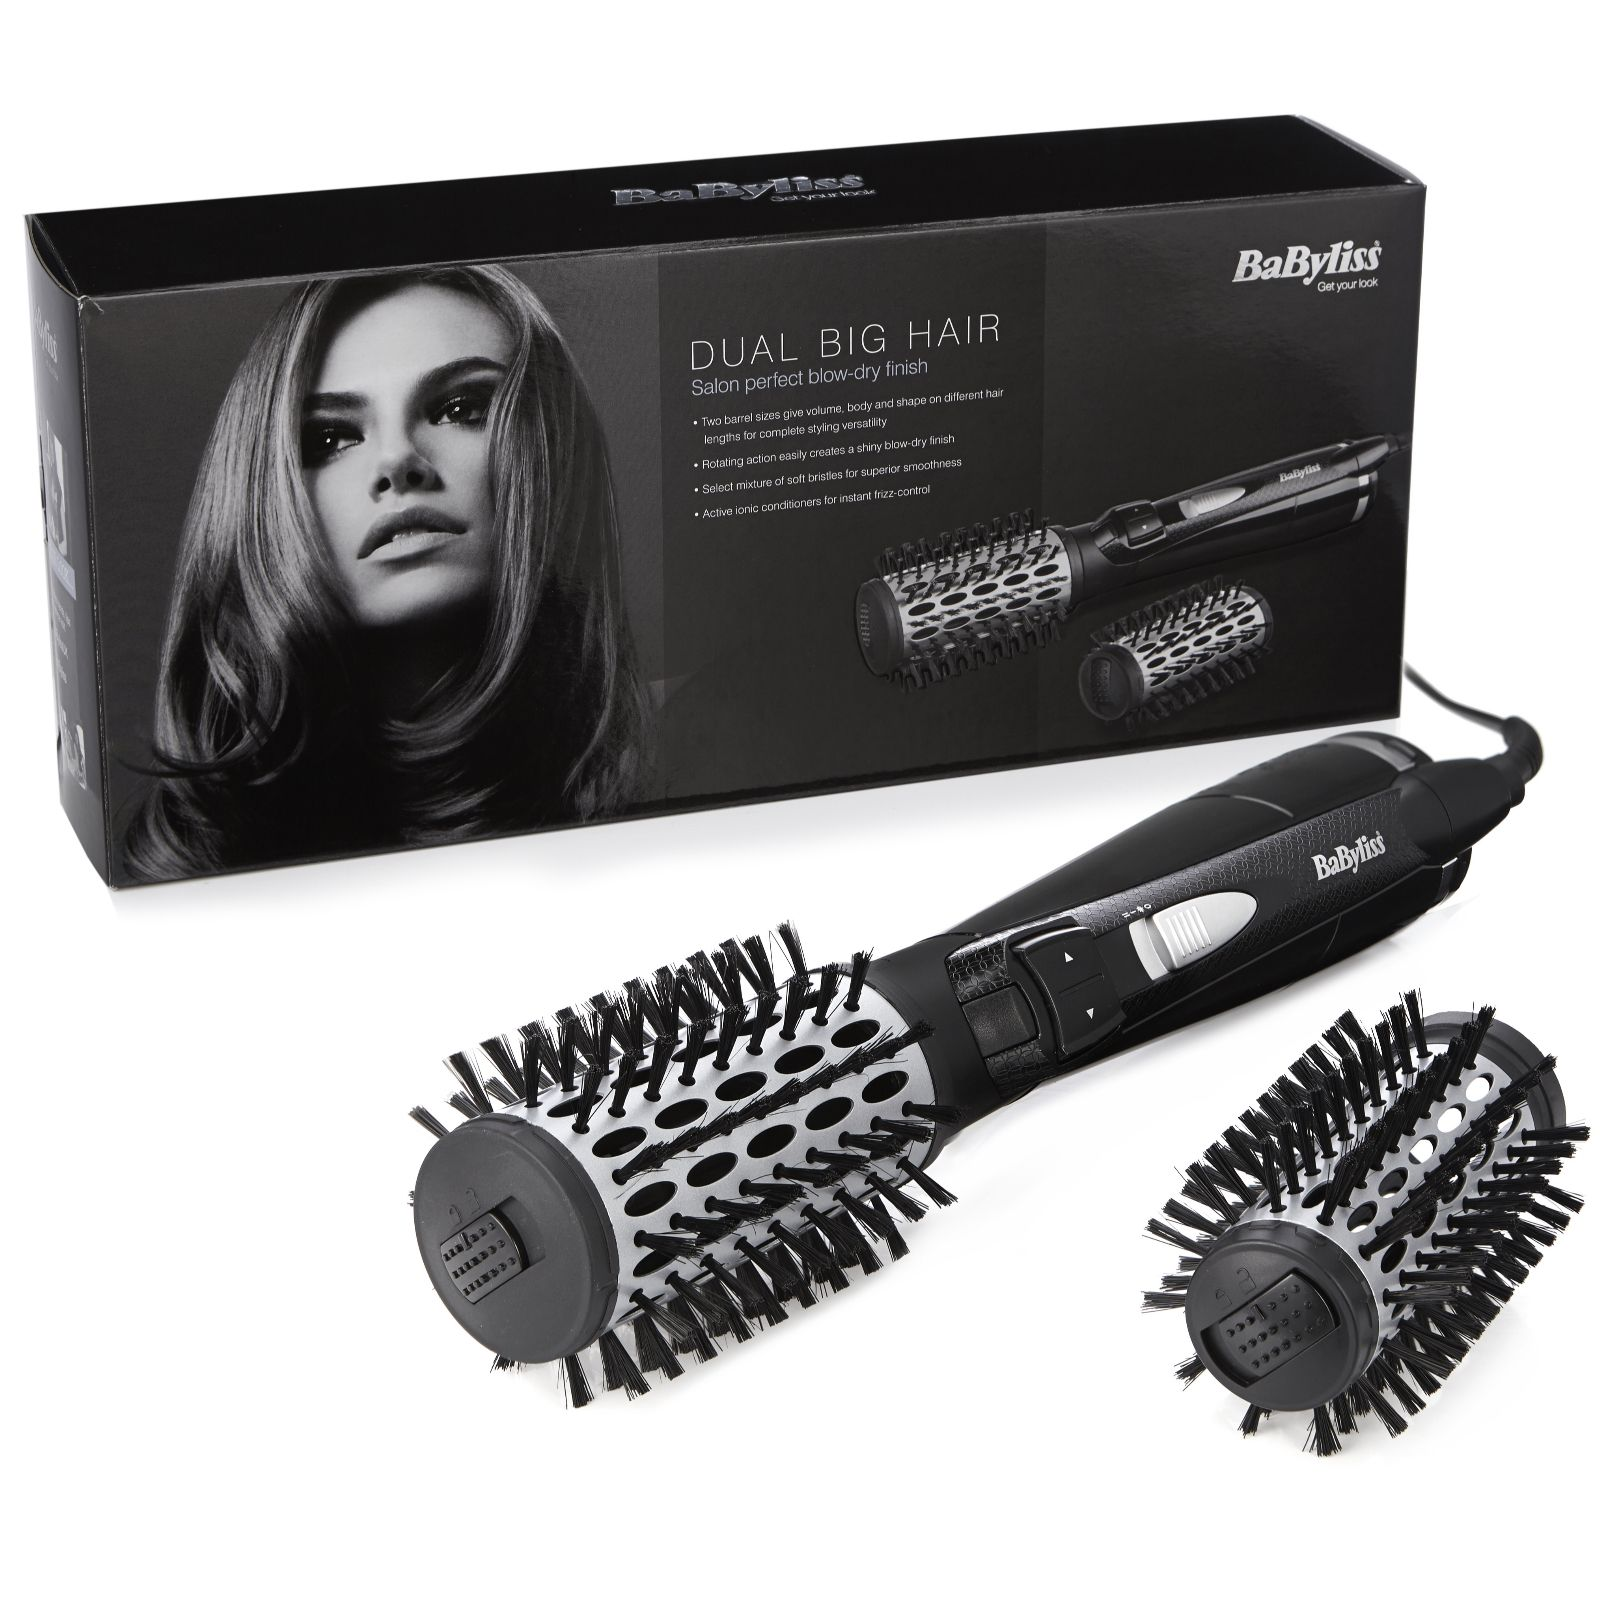 New Babyliss 2990u Dual Big Hair Rotating Hot Brush Styler